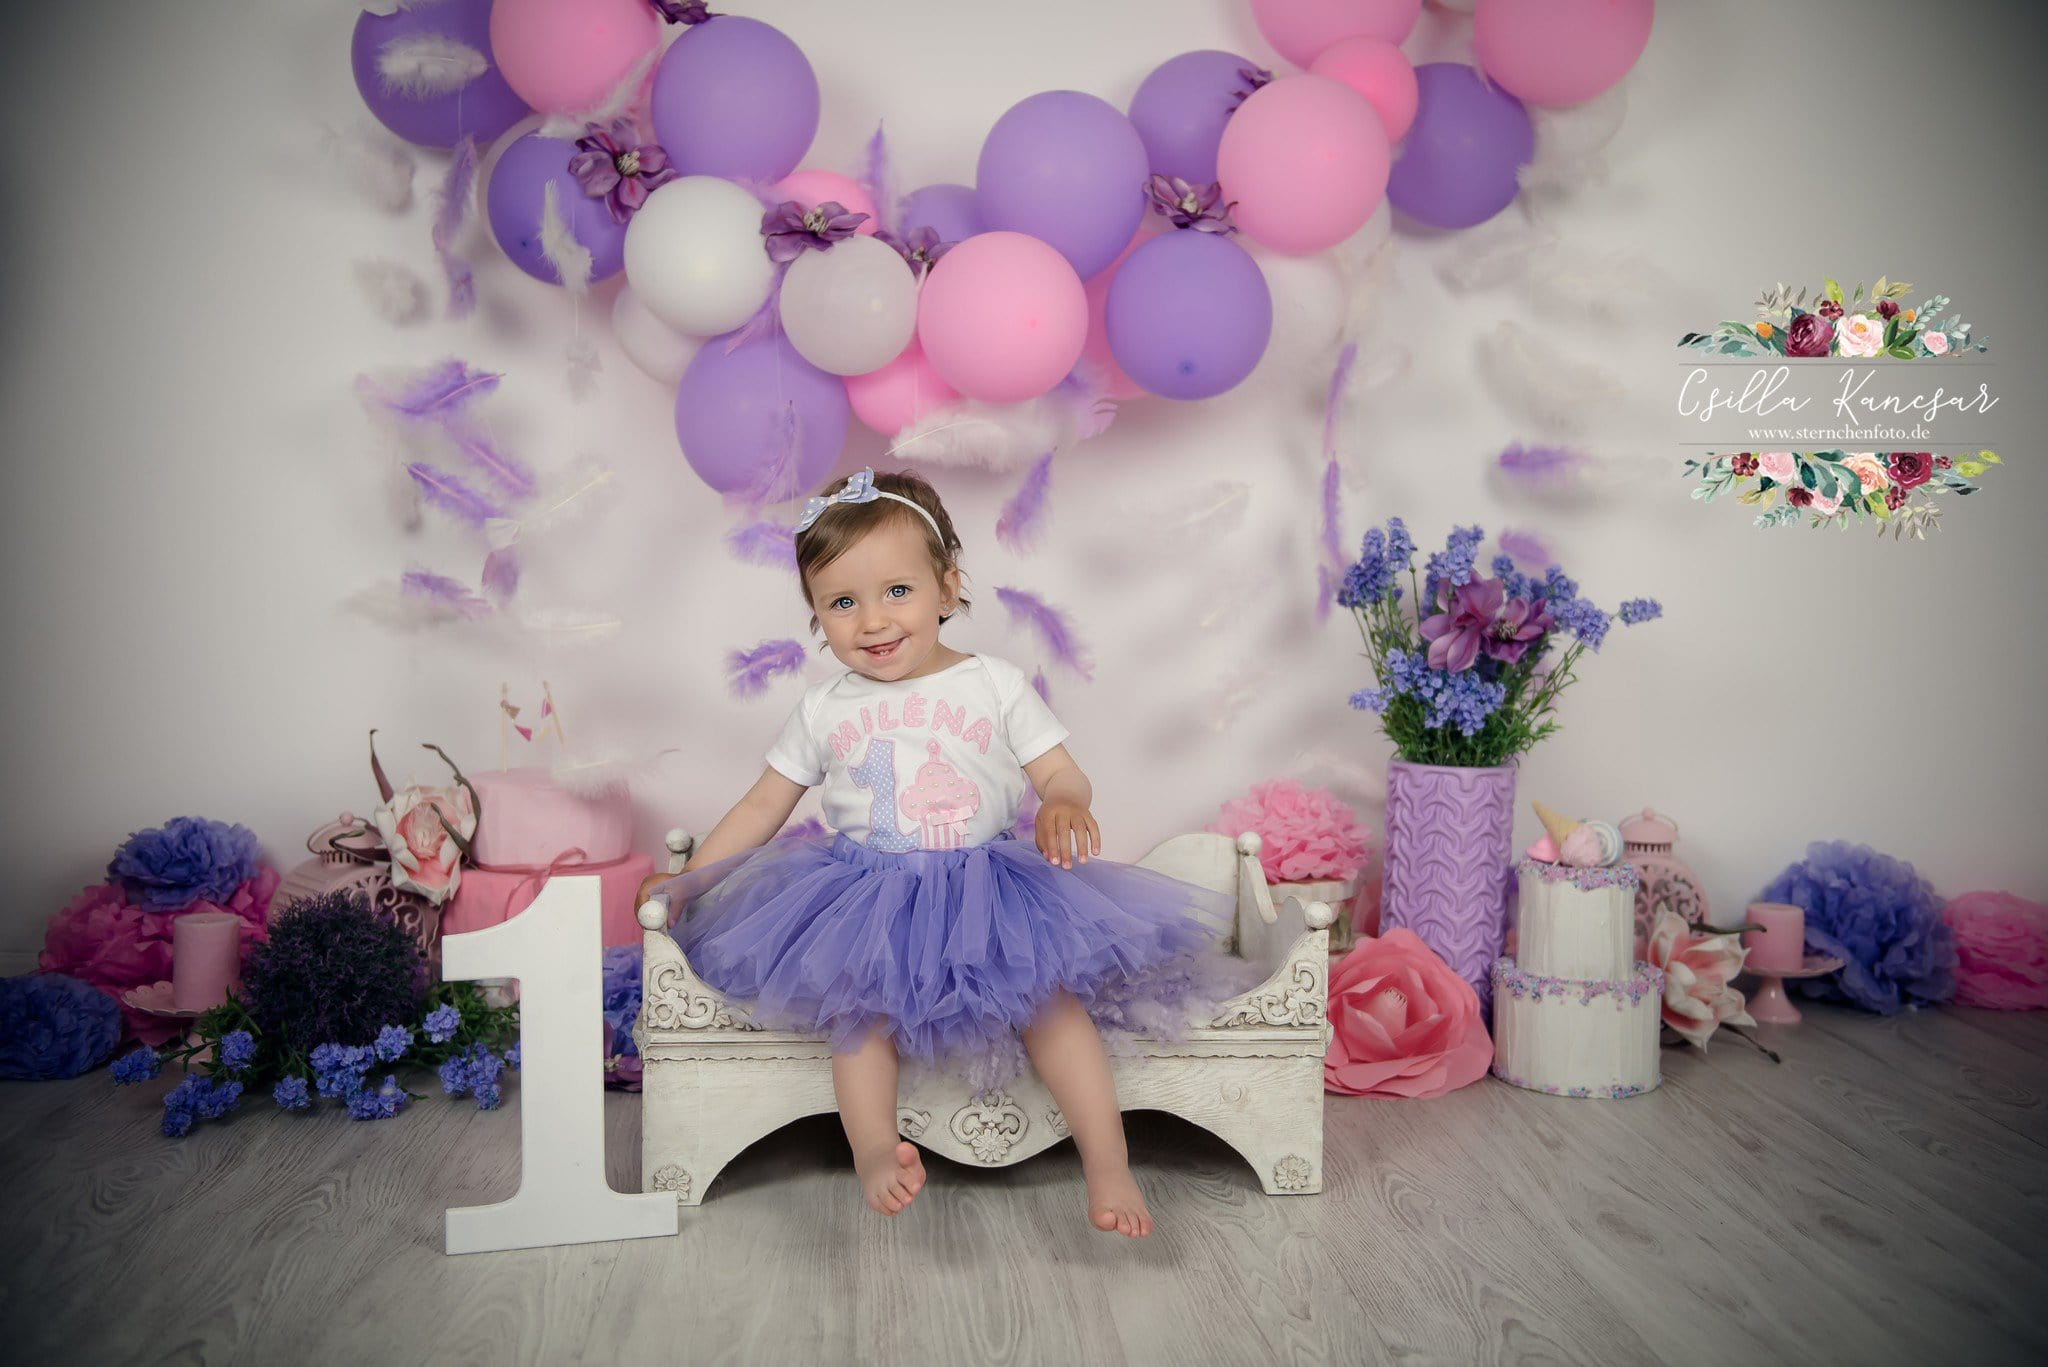 Birthday Party Cake Smash Pink Balloons Photography Backdrop Blue Purple